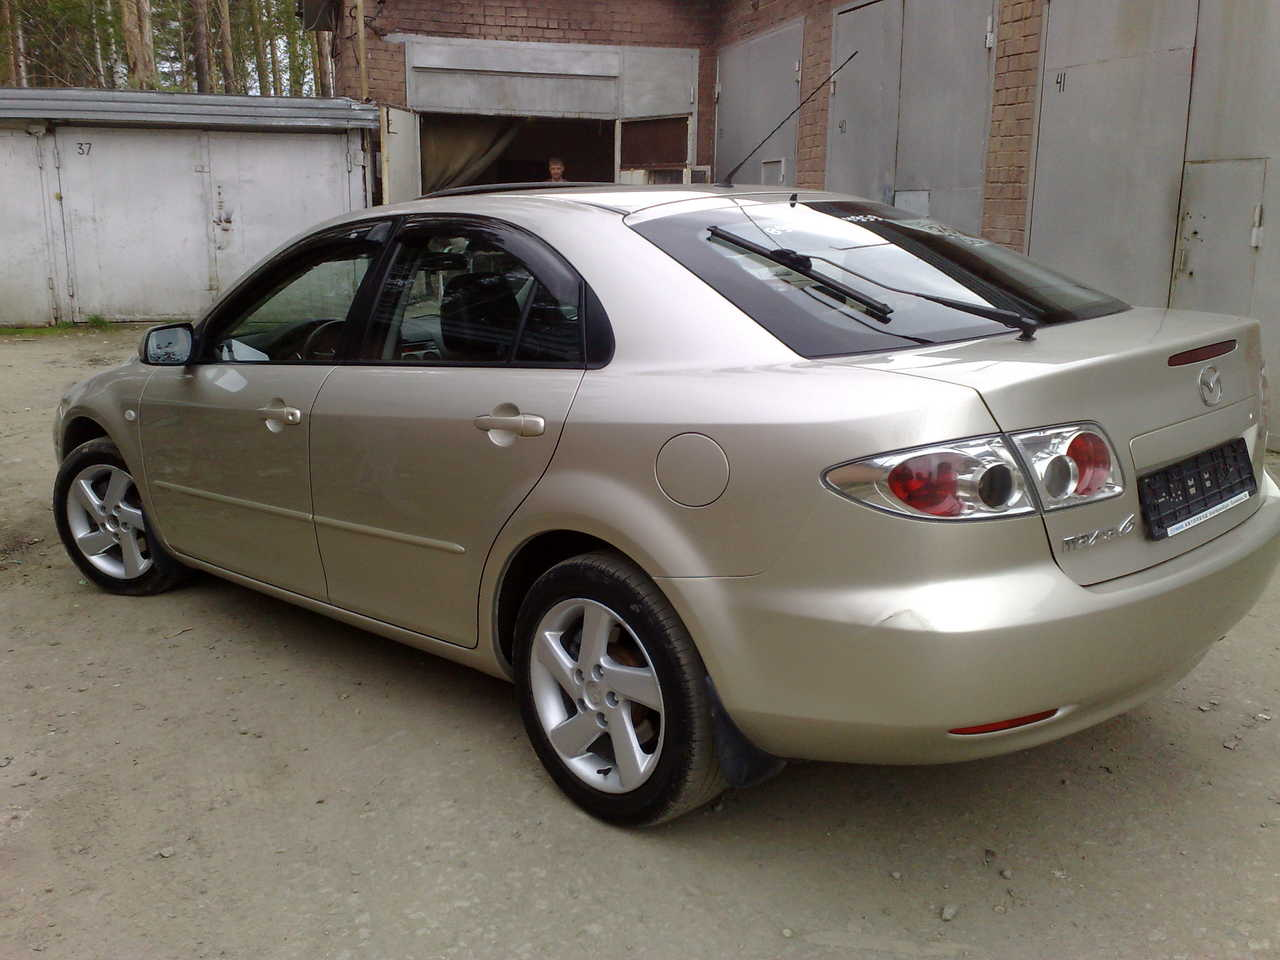 2004 mazda mazda6 pictures gasoline ff automatic for sale. Black Bedroom Furniture Sets. Home Design Ideas